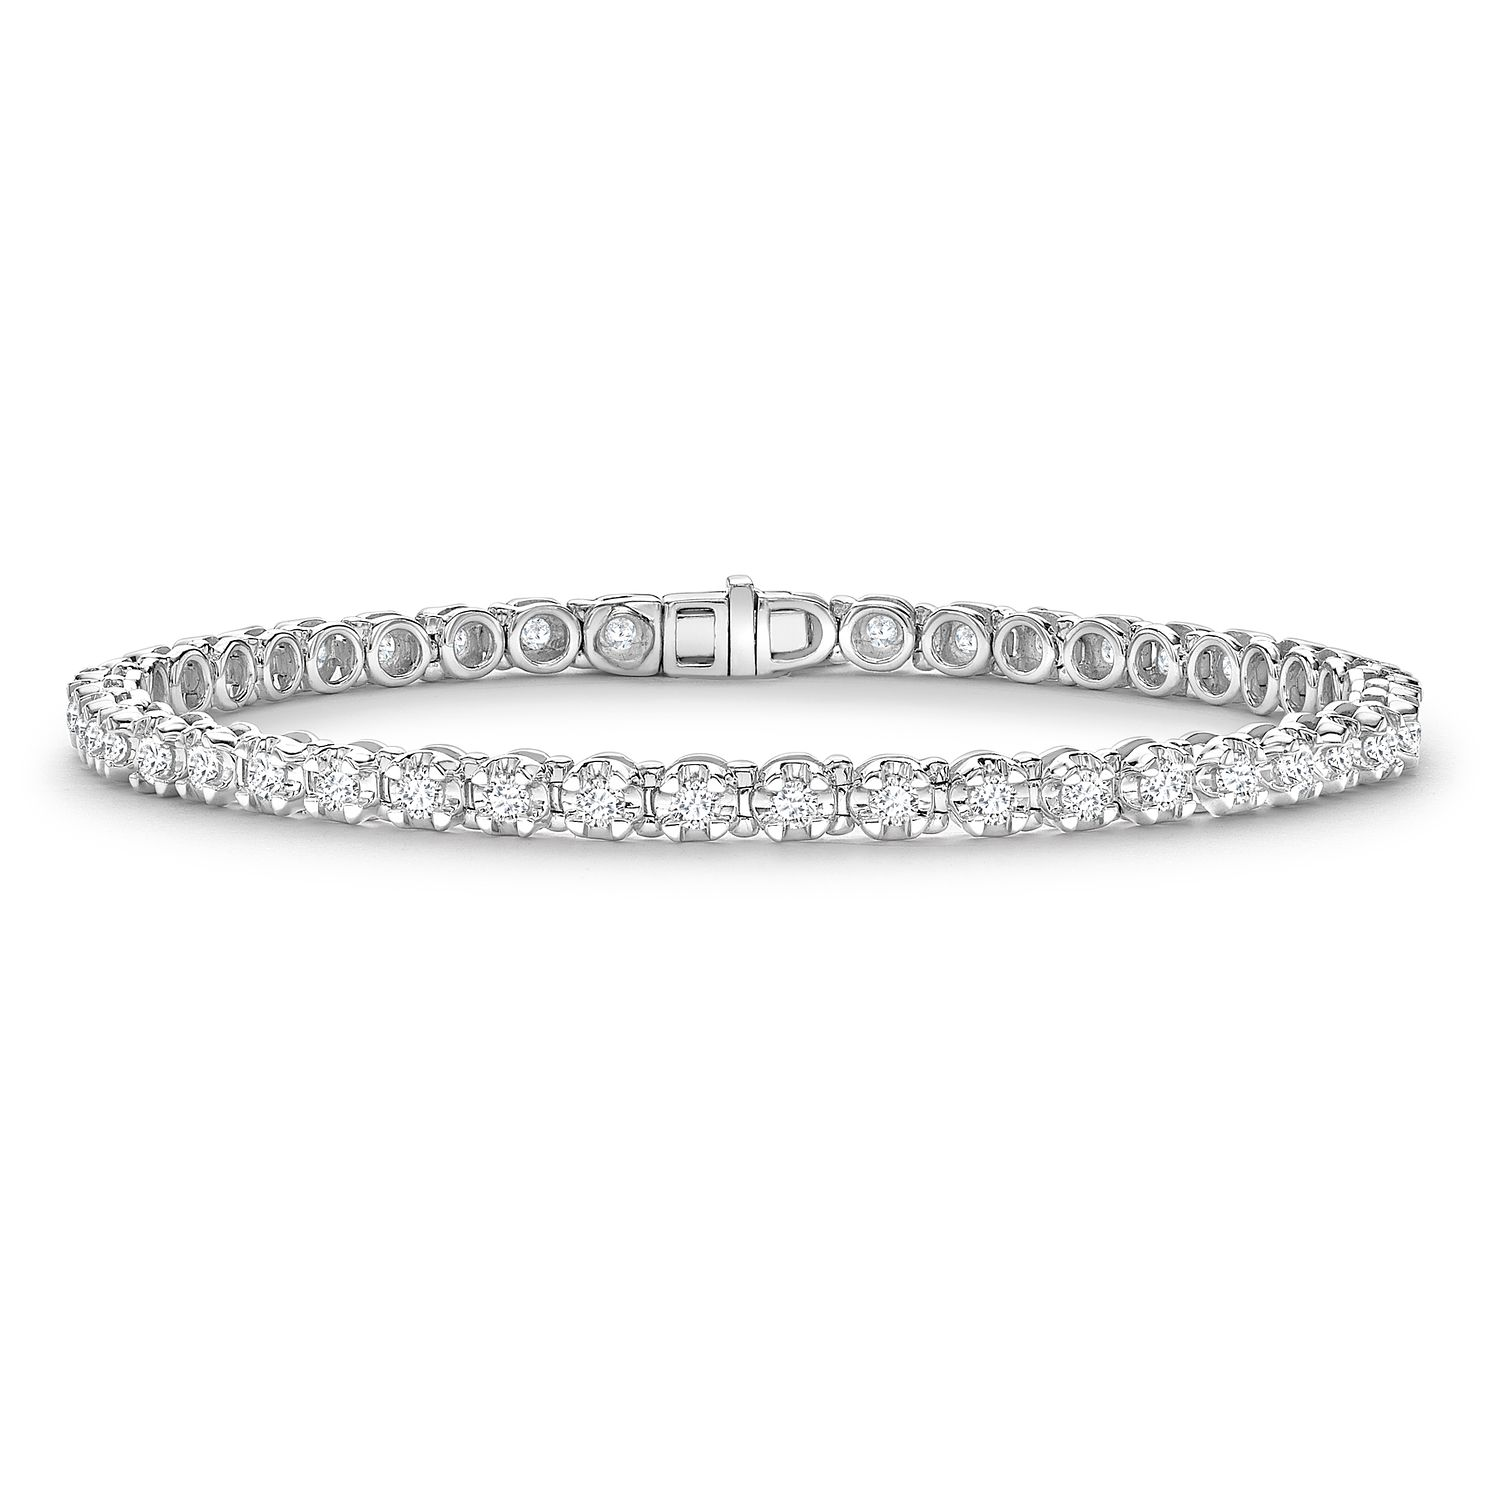 de bangle diamond category jewellery bracelet thin bangles beers bracelets